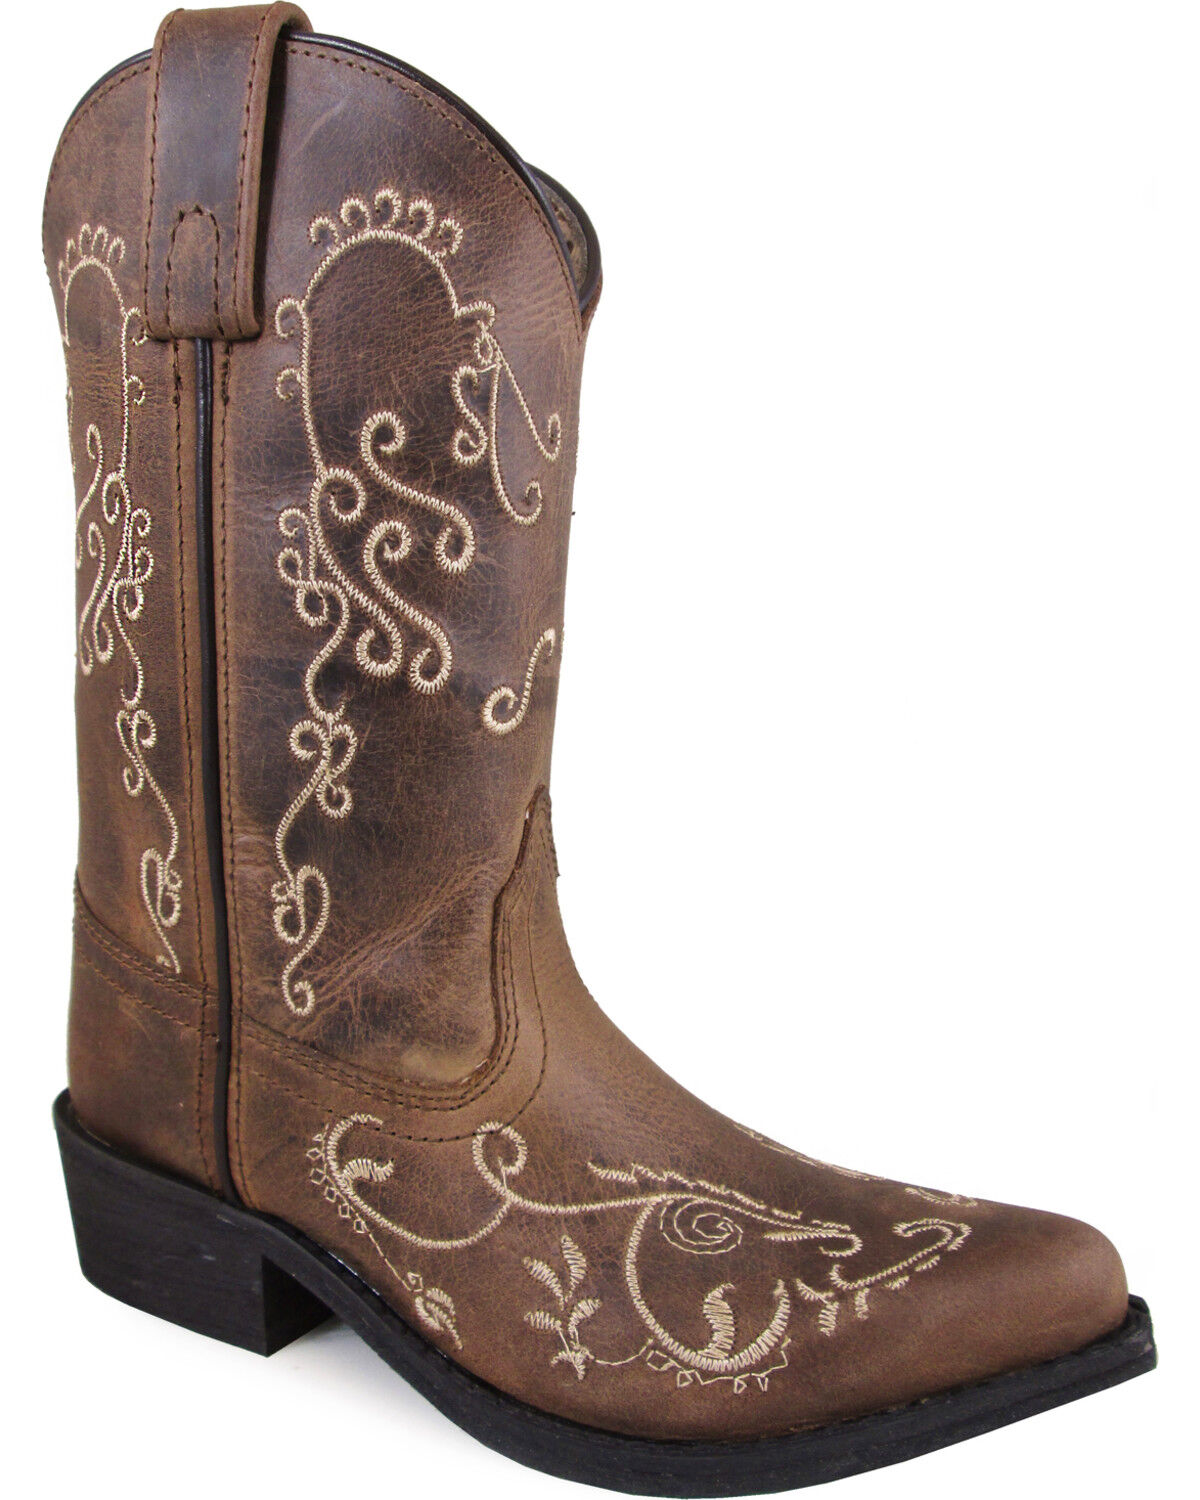 Smoky Mountain Youth Girls Marilyn Brown Leather Cowboy Boots